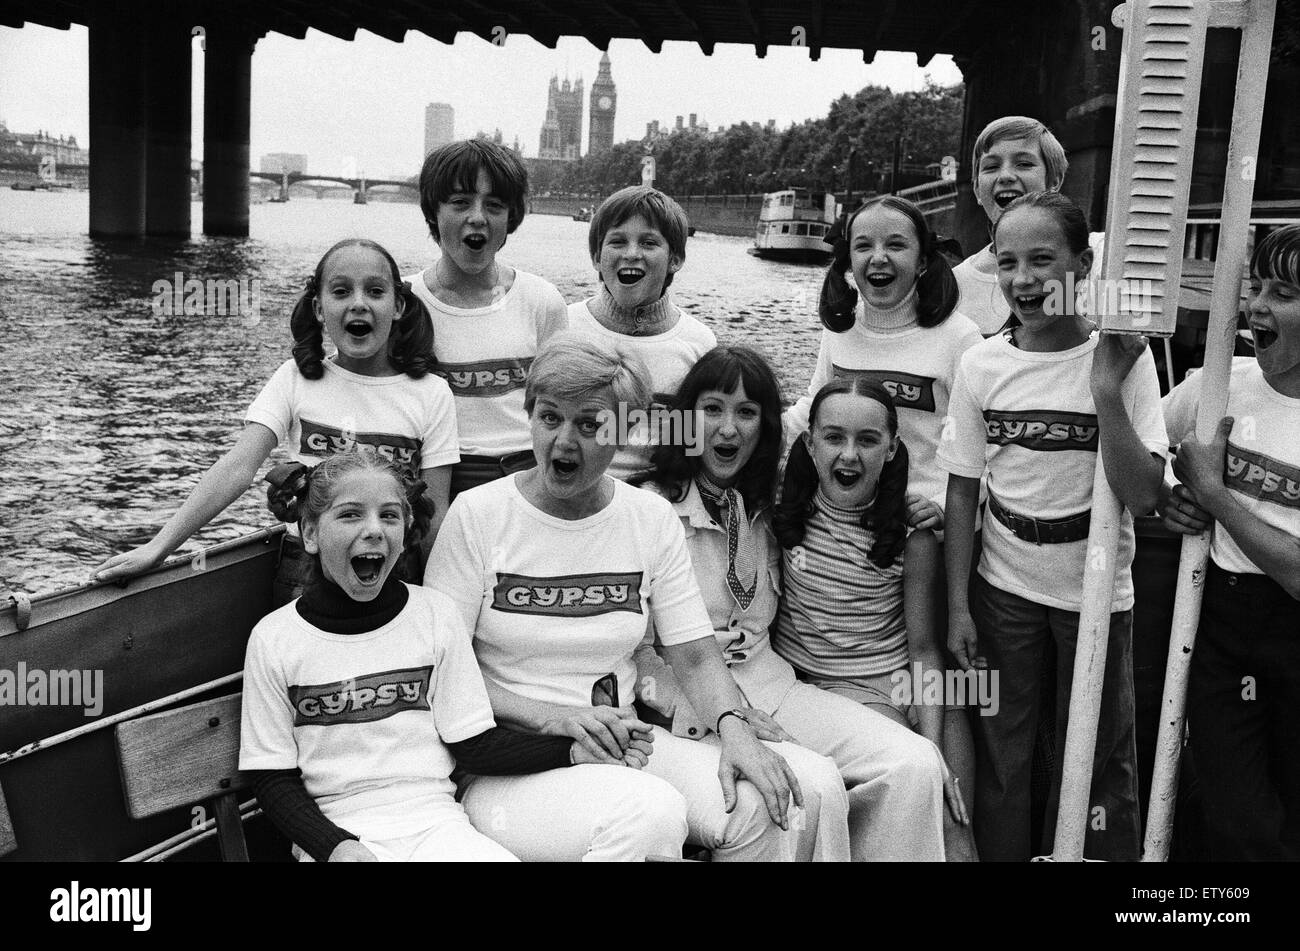 The entire cast of the show 'Gypsy' celebrated the 100th performance by going for a boat trip up the Thames - Stock Image